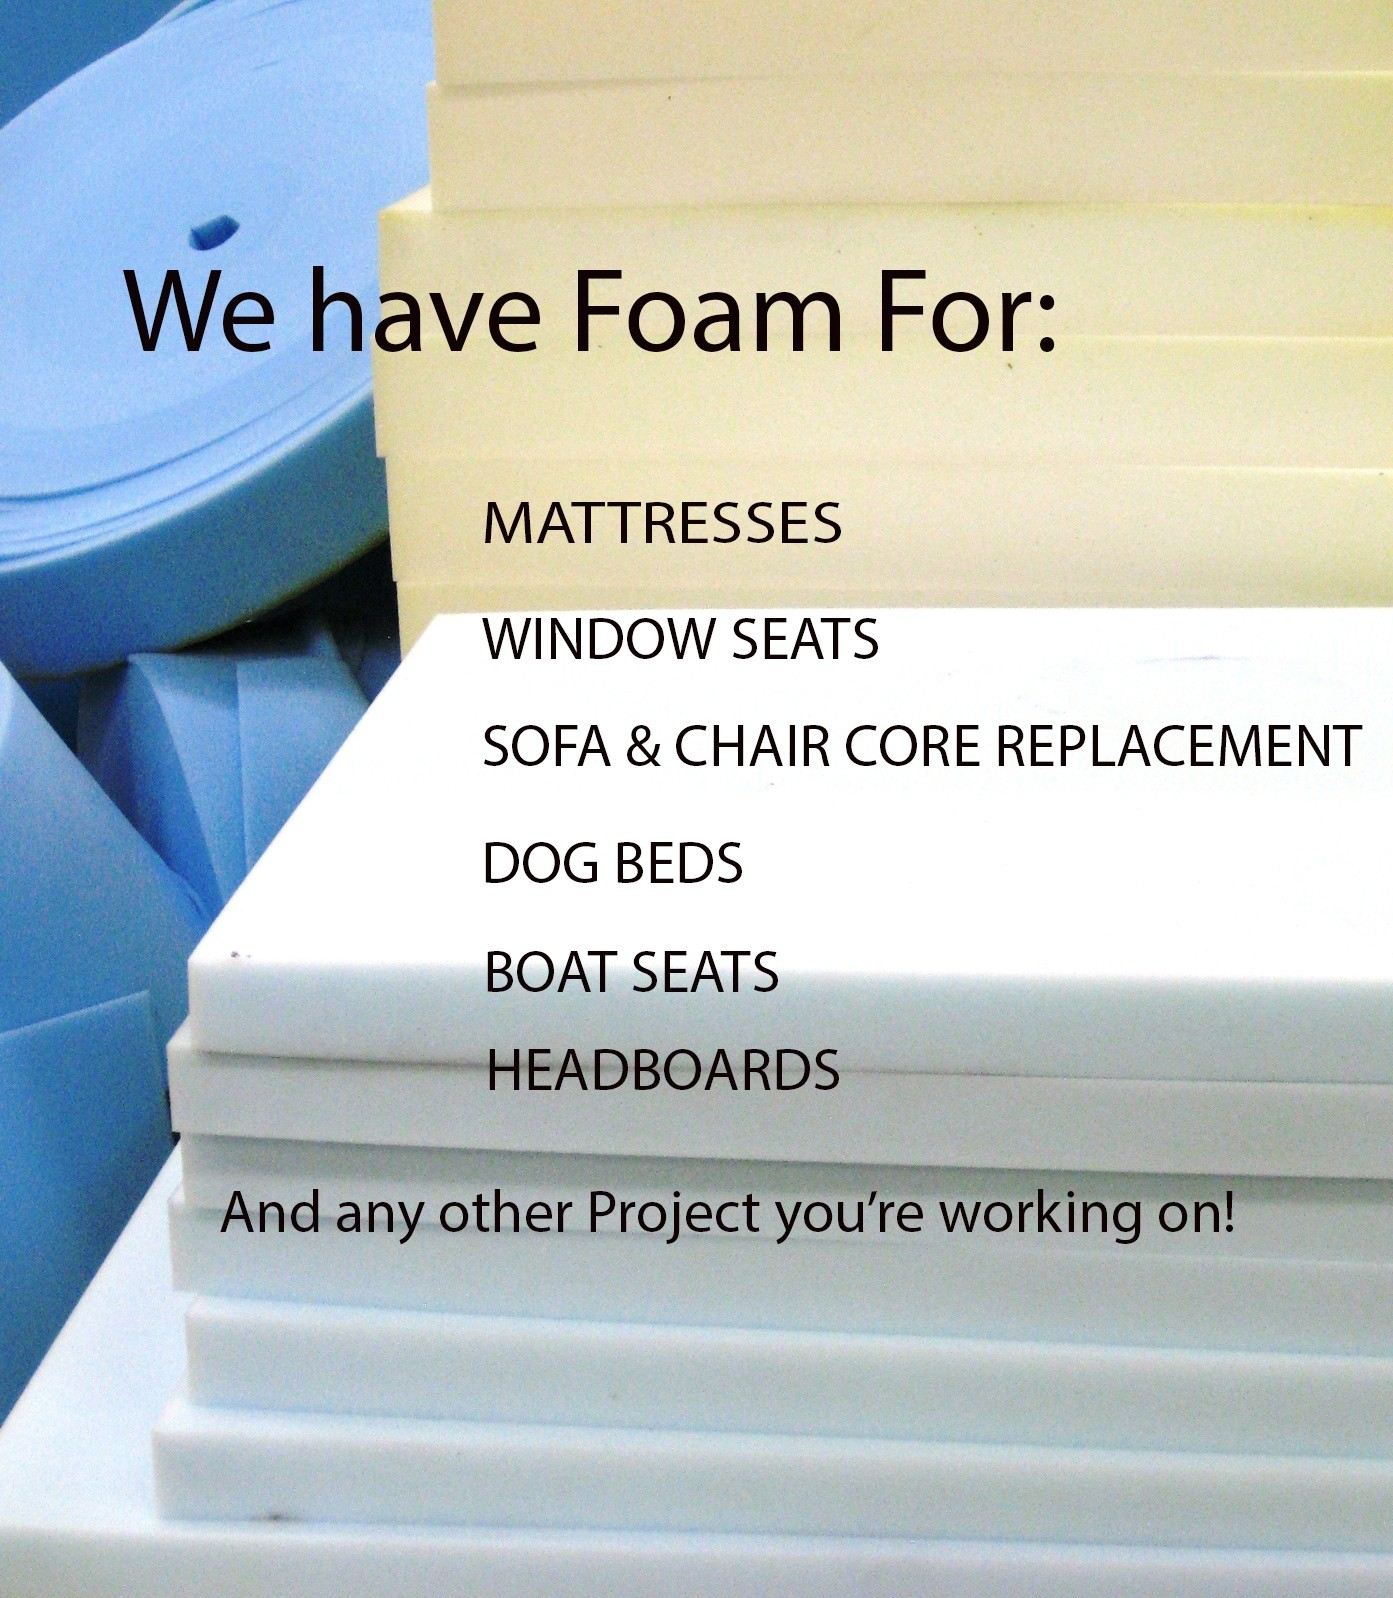 Need Foam?  We have it here!